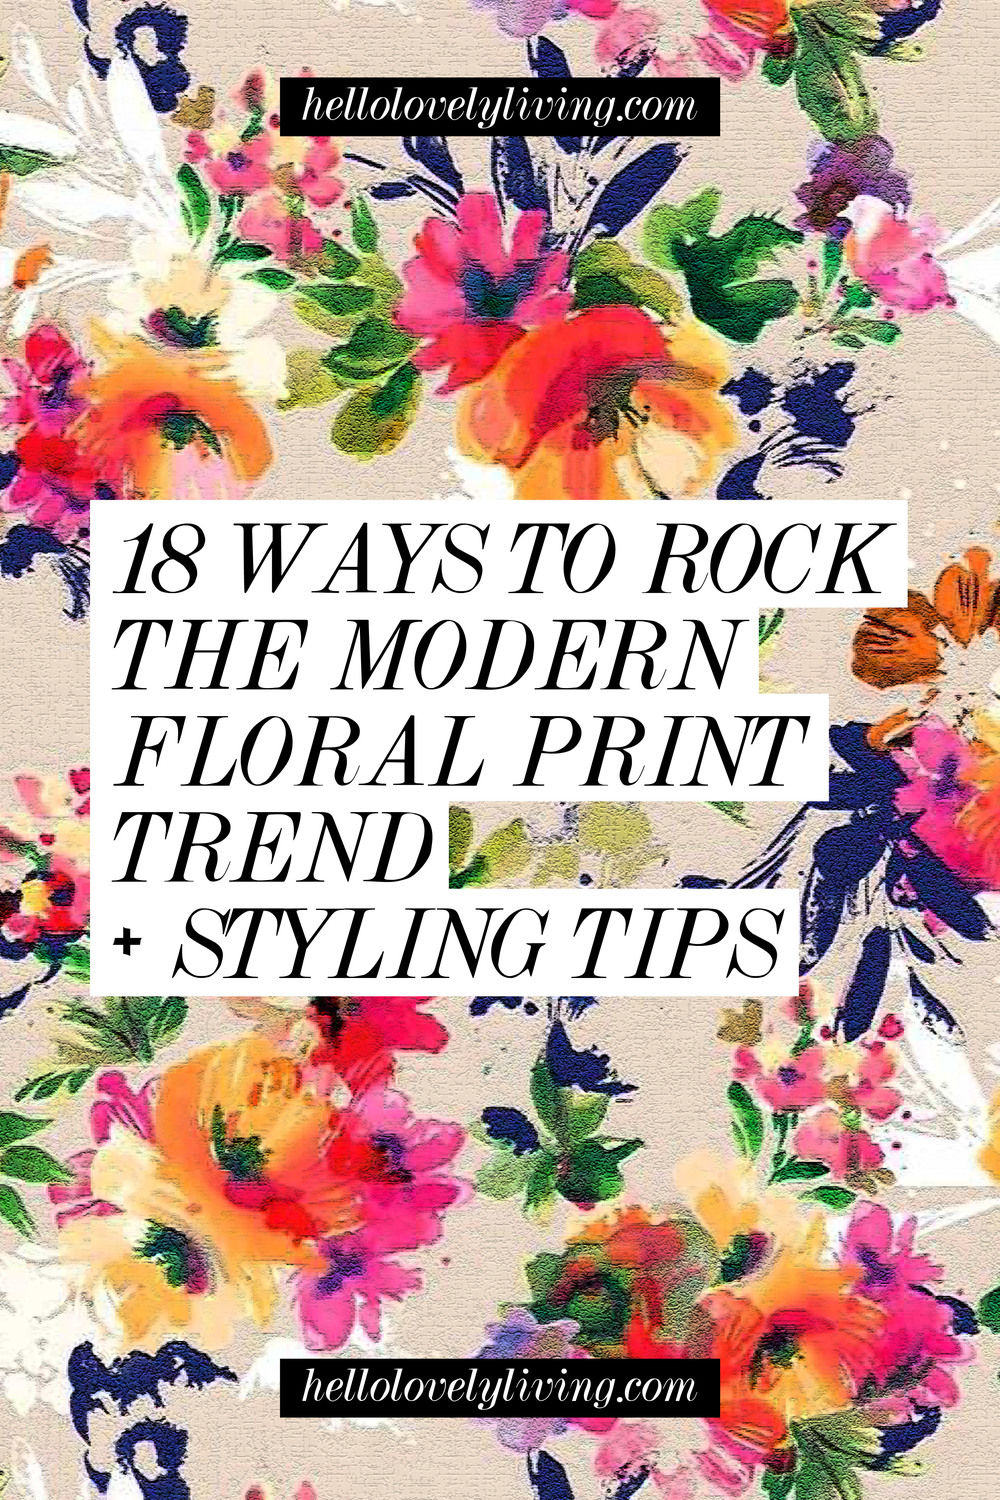 18 Ways to Rock the Modern Floral Print Trend + Styling Tips